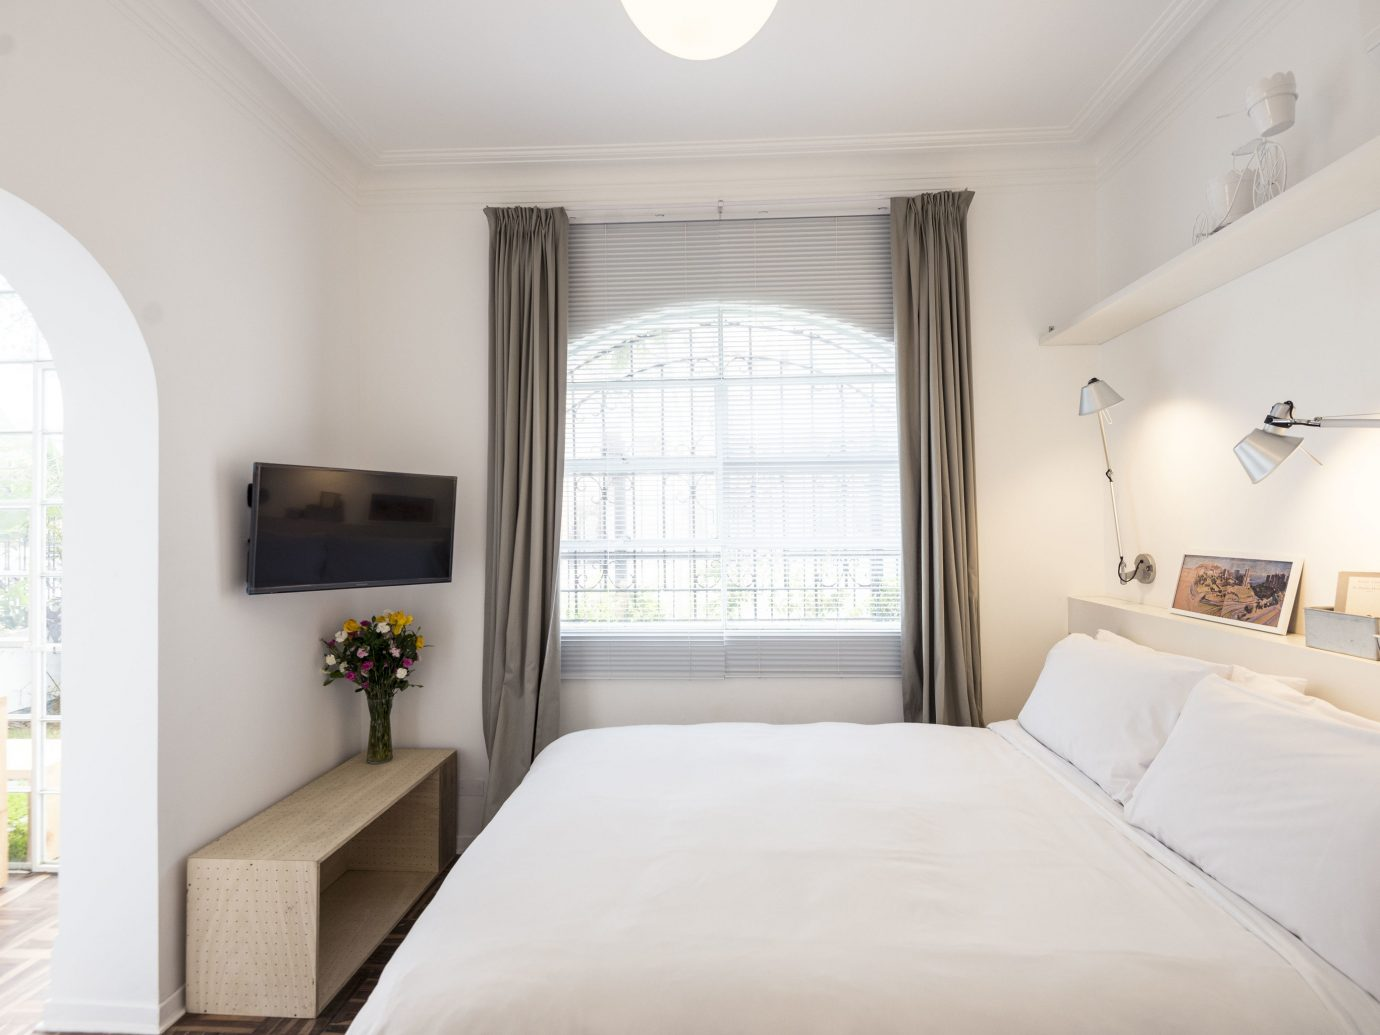 Boutique Hotels Hotels indoor wall bed window room property Bedroom real estate white interior design ceiling home estate Suite bed frame daylighting floor house apartment comfort interior designer